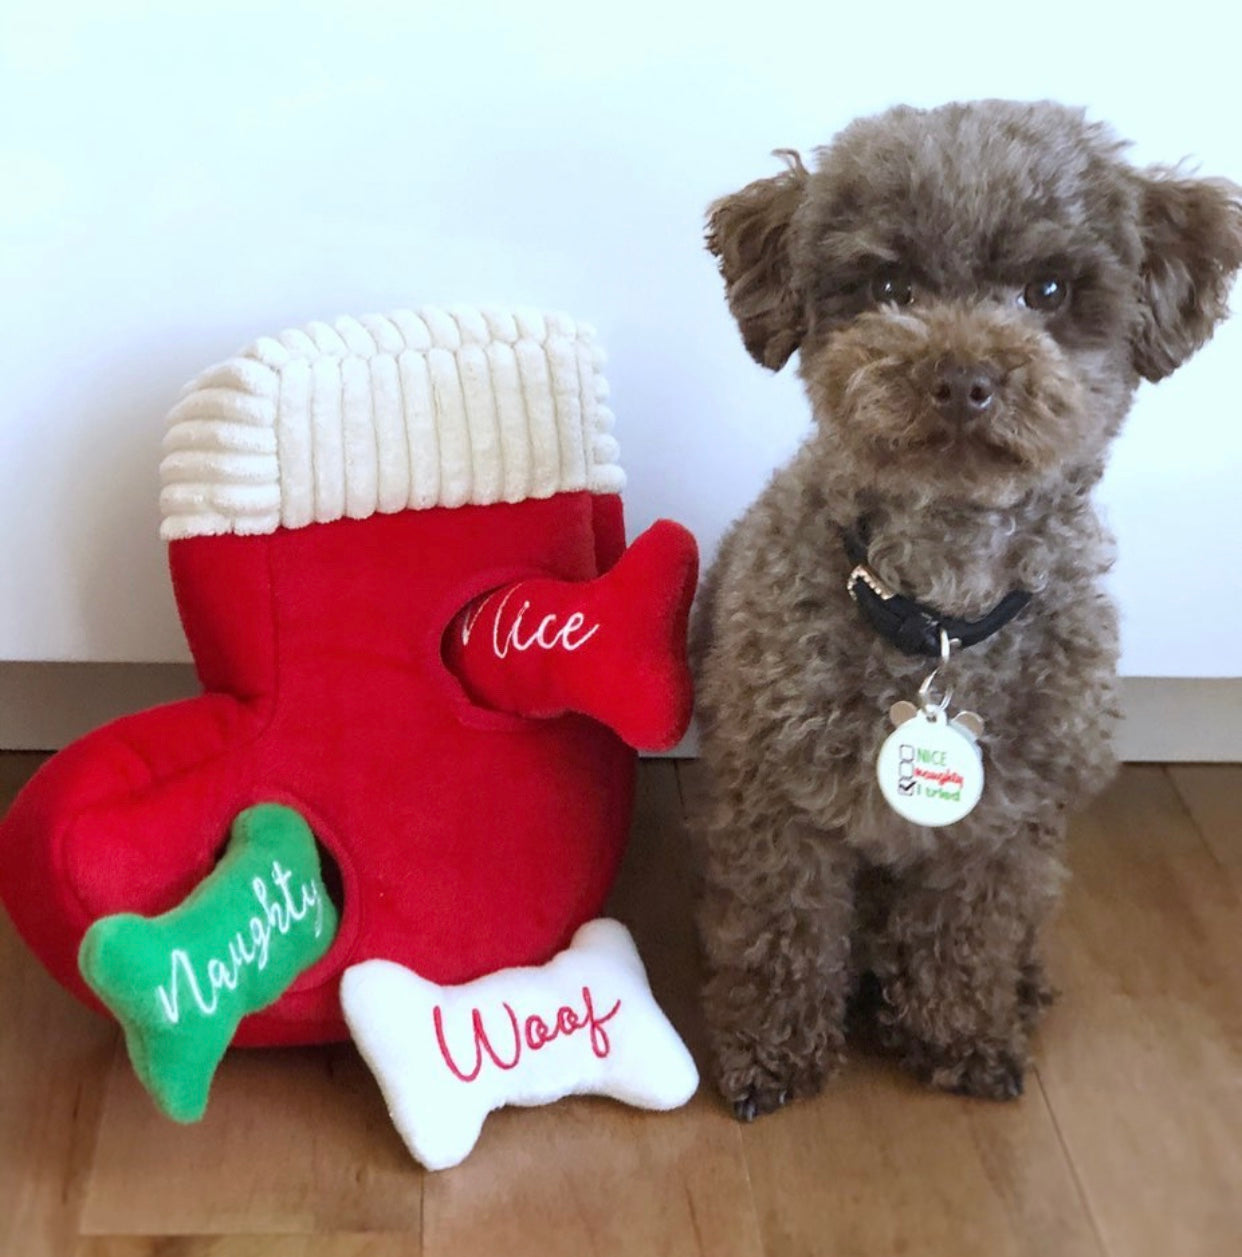 12 Dogs That Are Ready for the Holidays | Blog | Gift Spawt